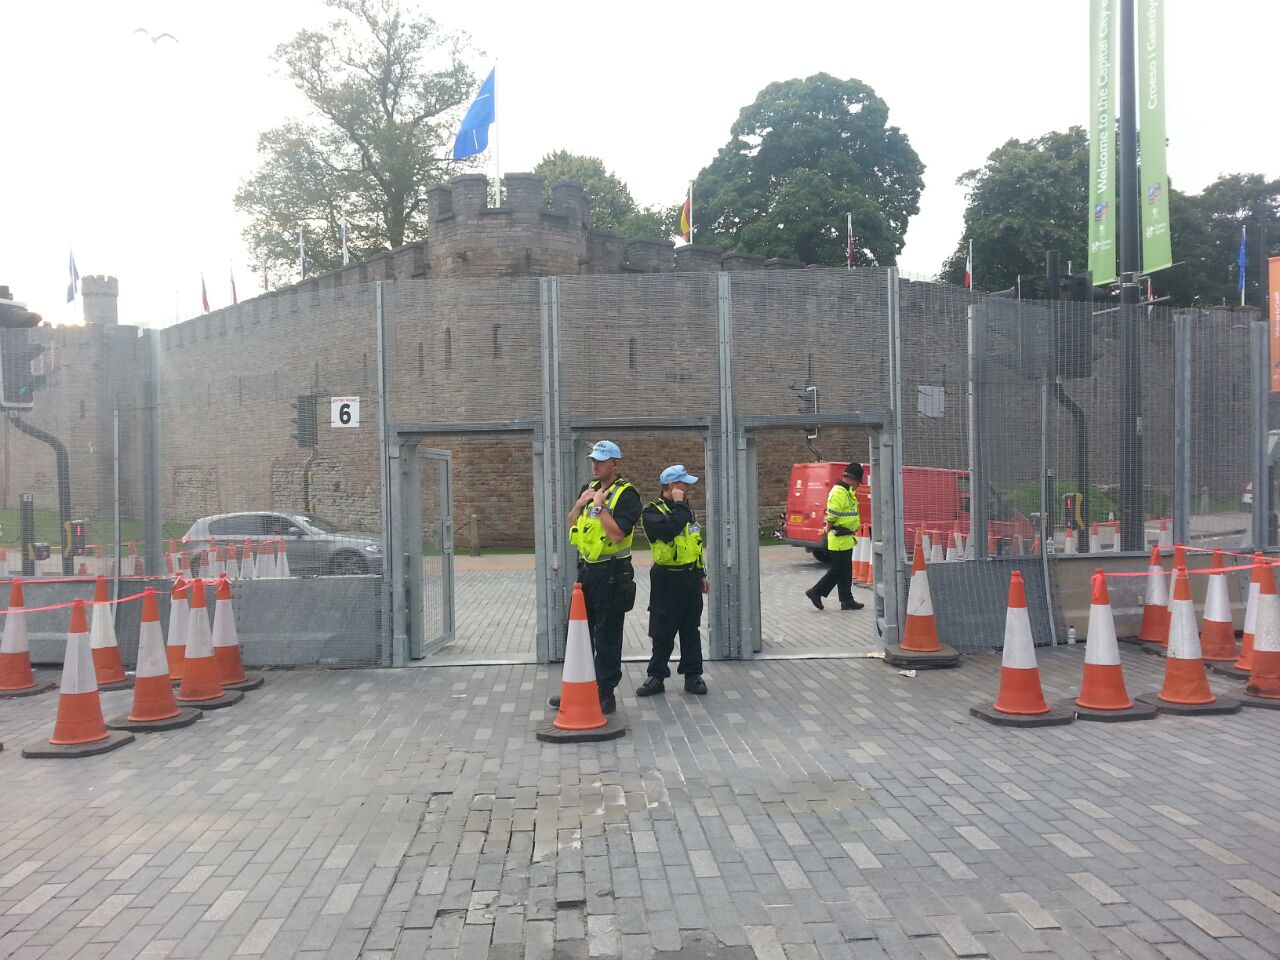 Nato Summit 2014: Cardiff Castle 'Ring of Steel'